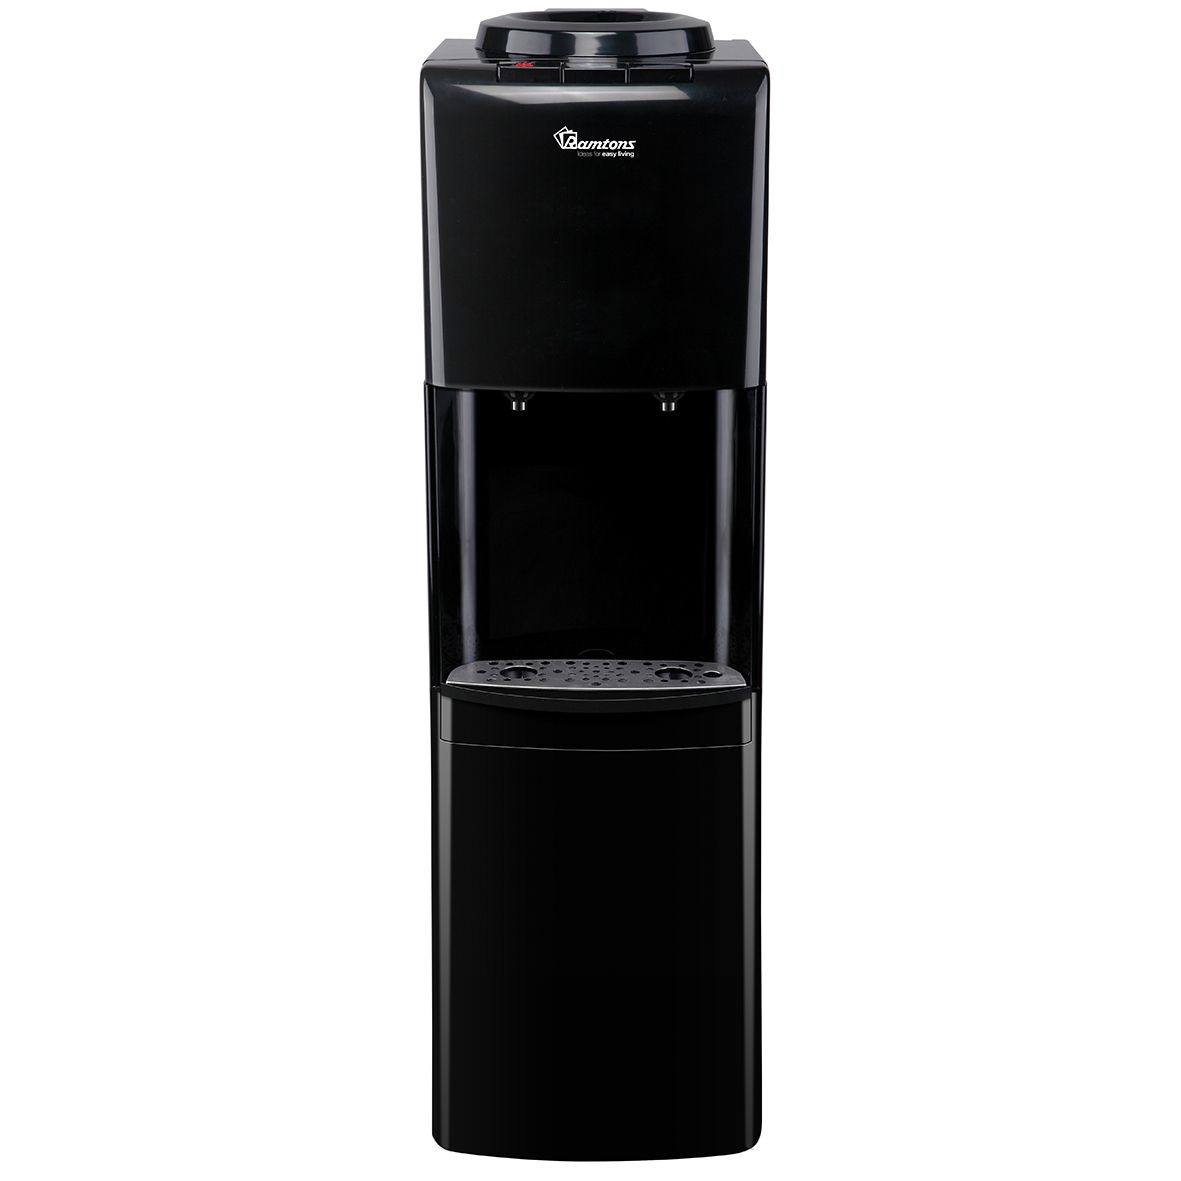 Ramtons Water Dispenser RM/561 in Kenya HOT & NORMAL FREE STANDING WATER DISPENSER